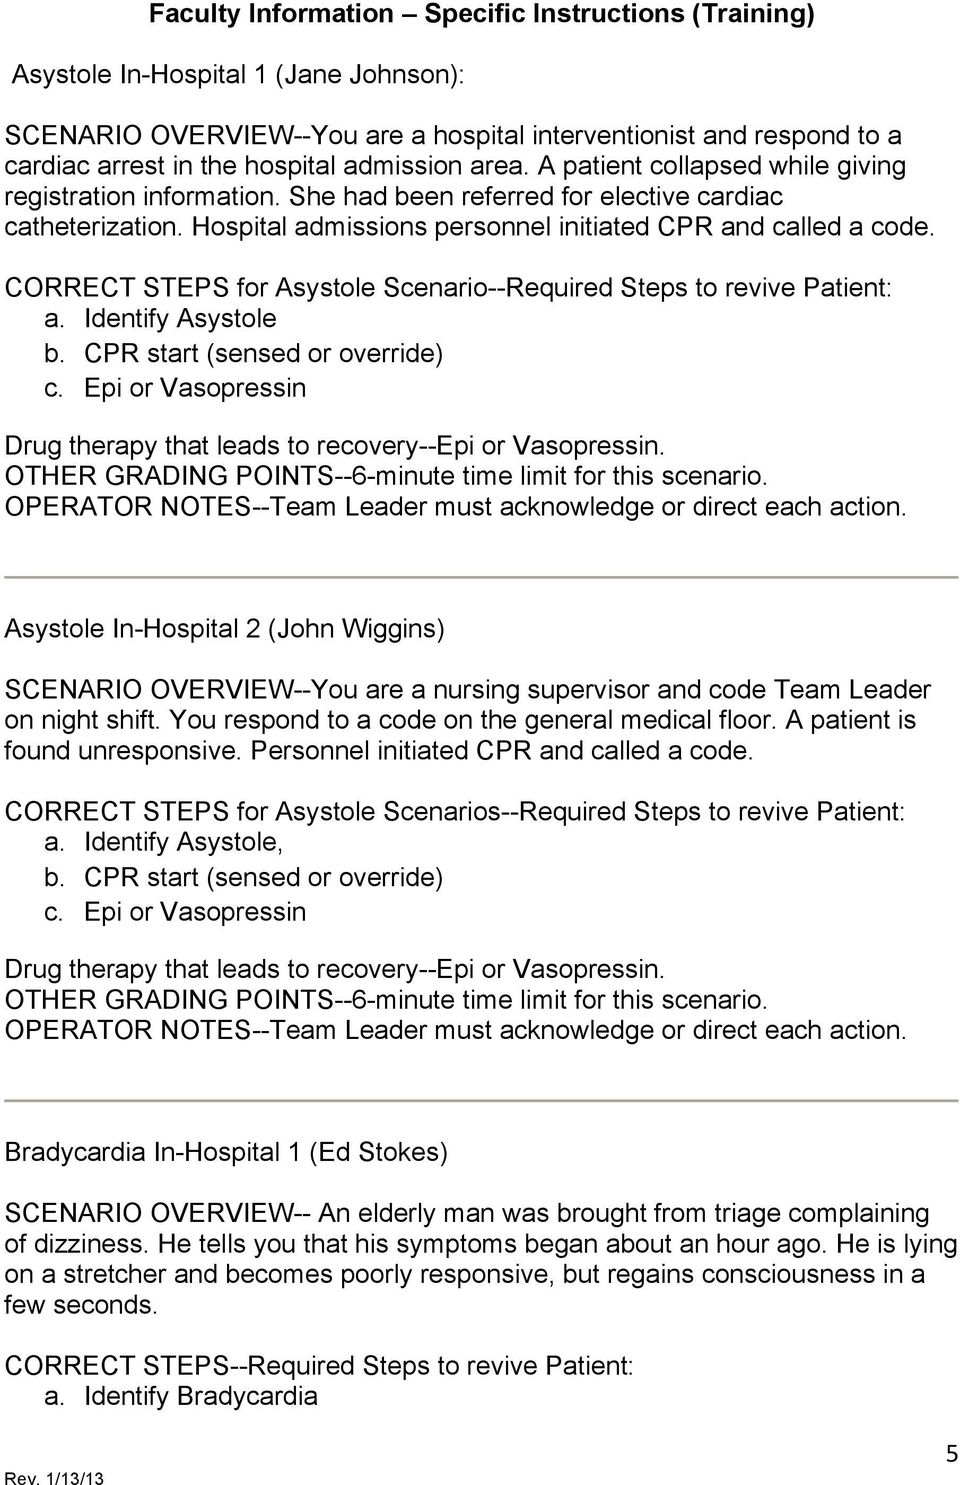 CORRECT STEPS for Asystole Scenario--Required Steps to revive Patient: a. Identify Asystole b. CPR start (sensed or override) c.